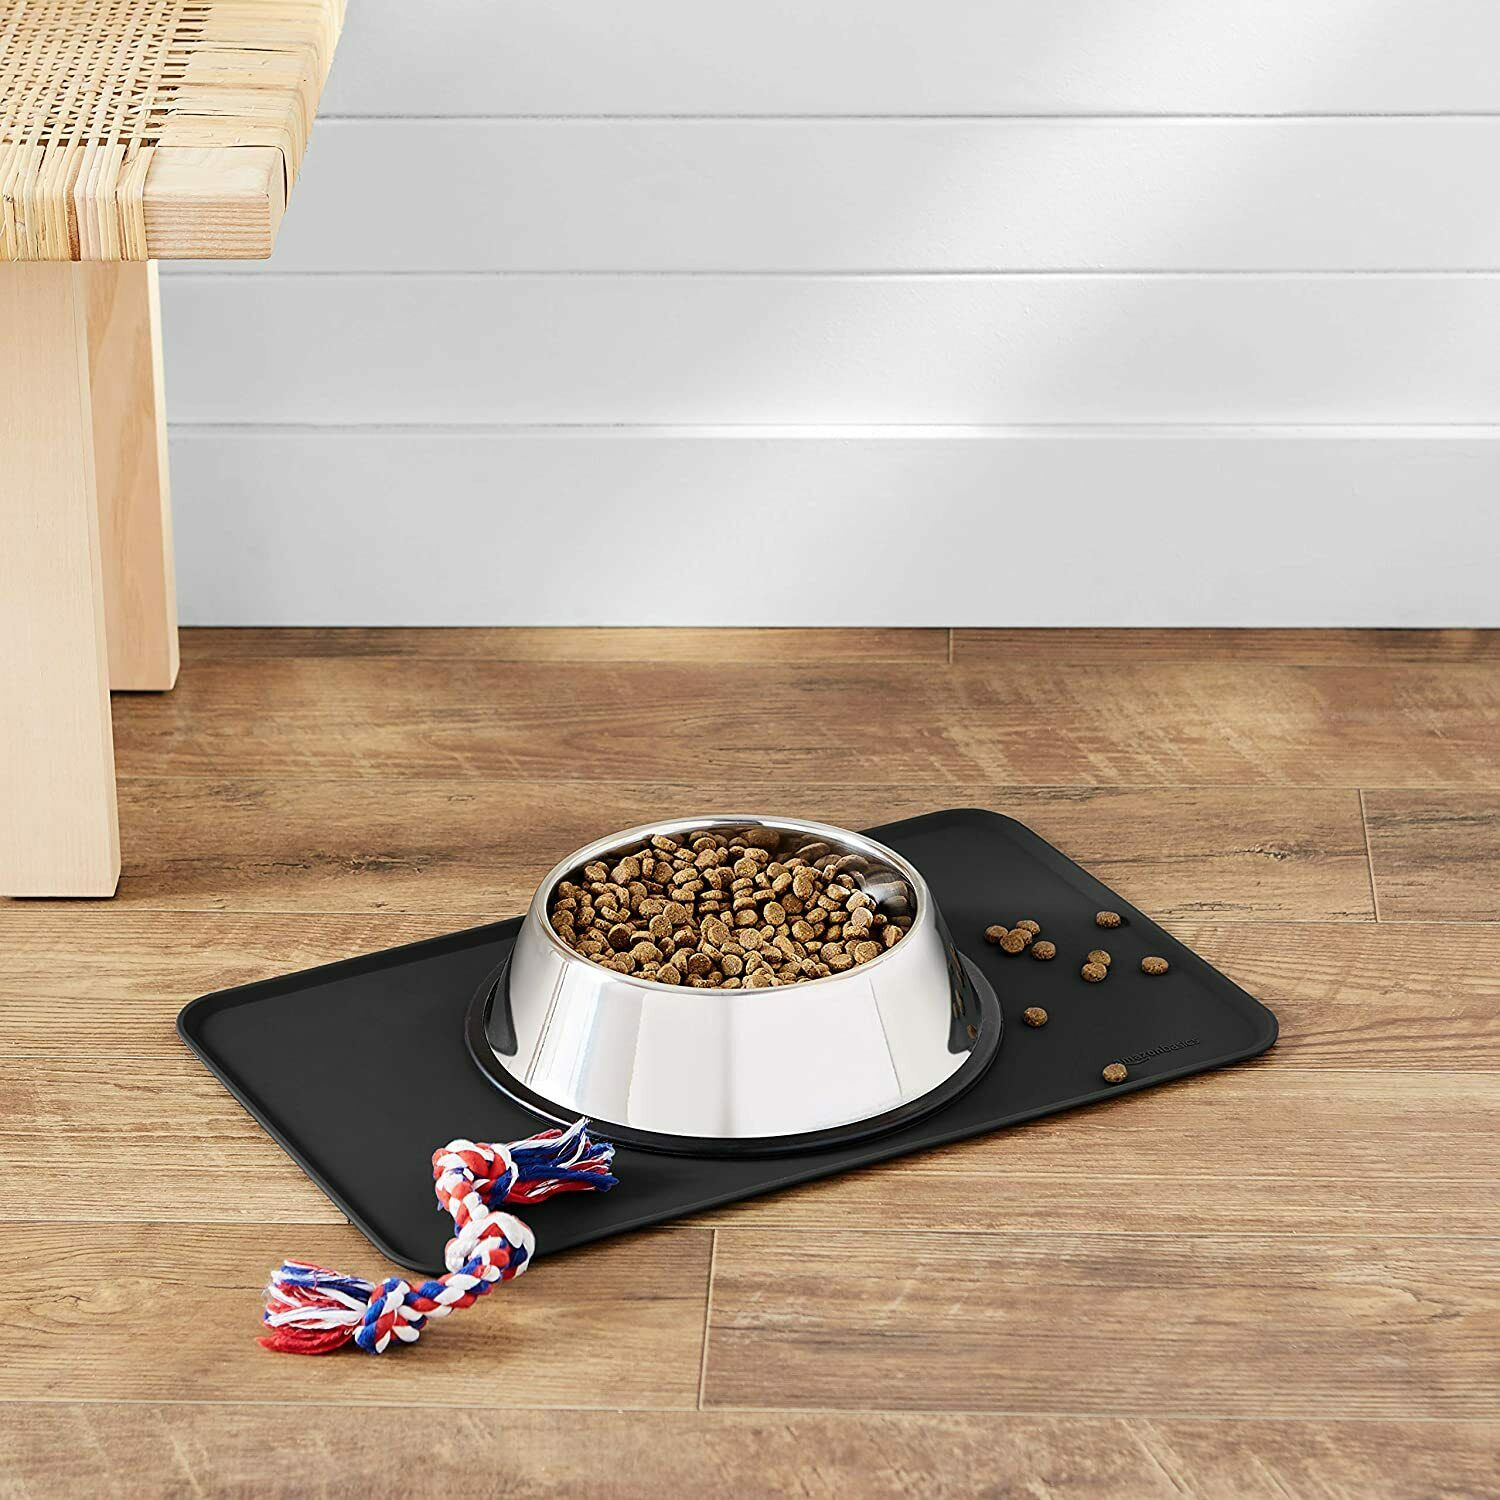 Amazon Basics Silicone Waterproof Pet Food & Water Bowl Mat Grey, 18.5 x 11.5